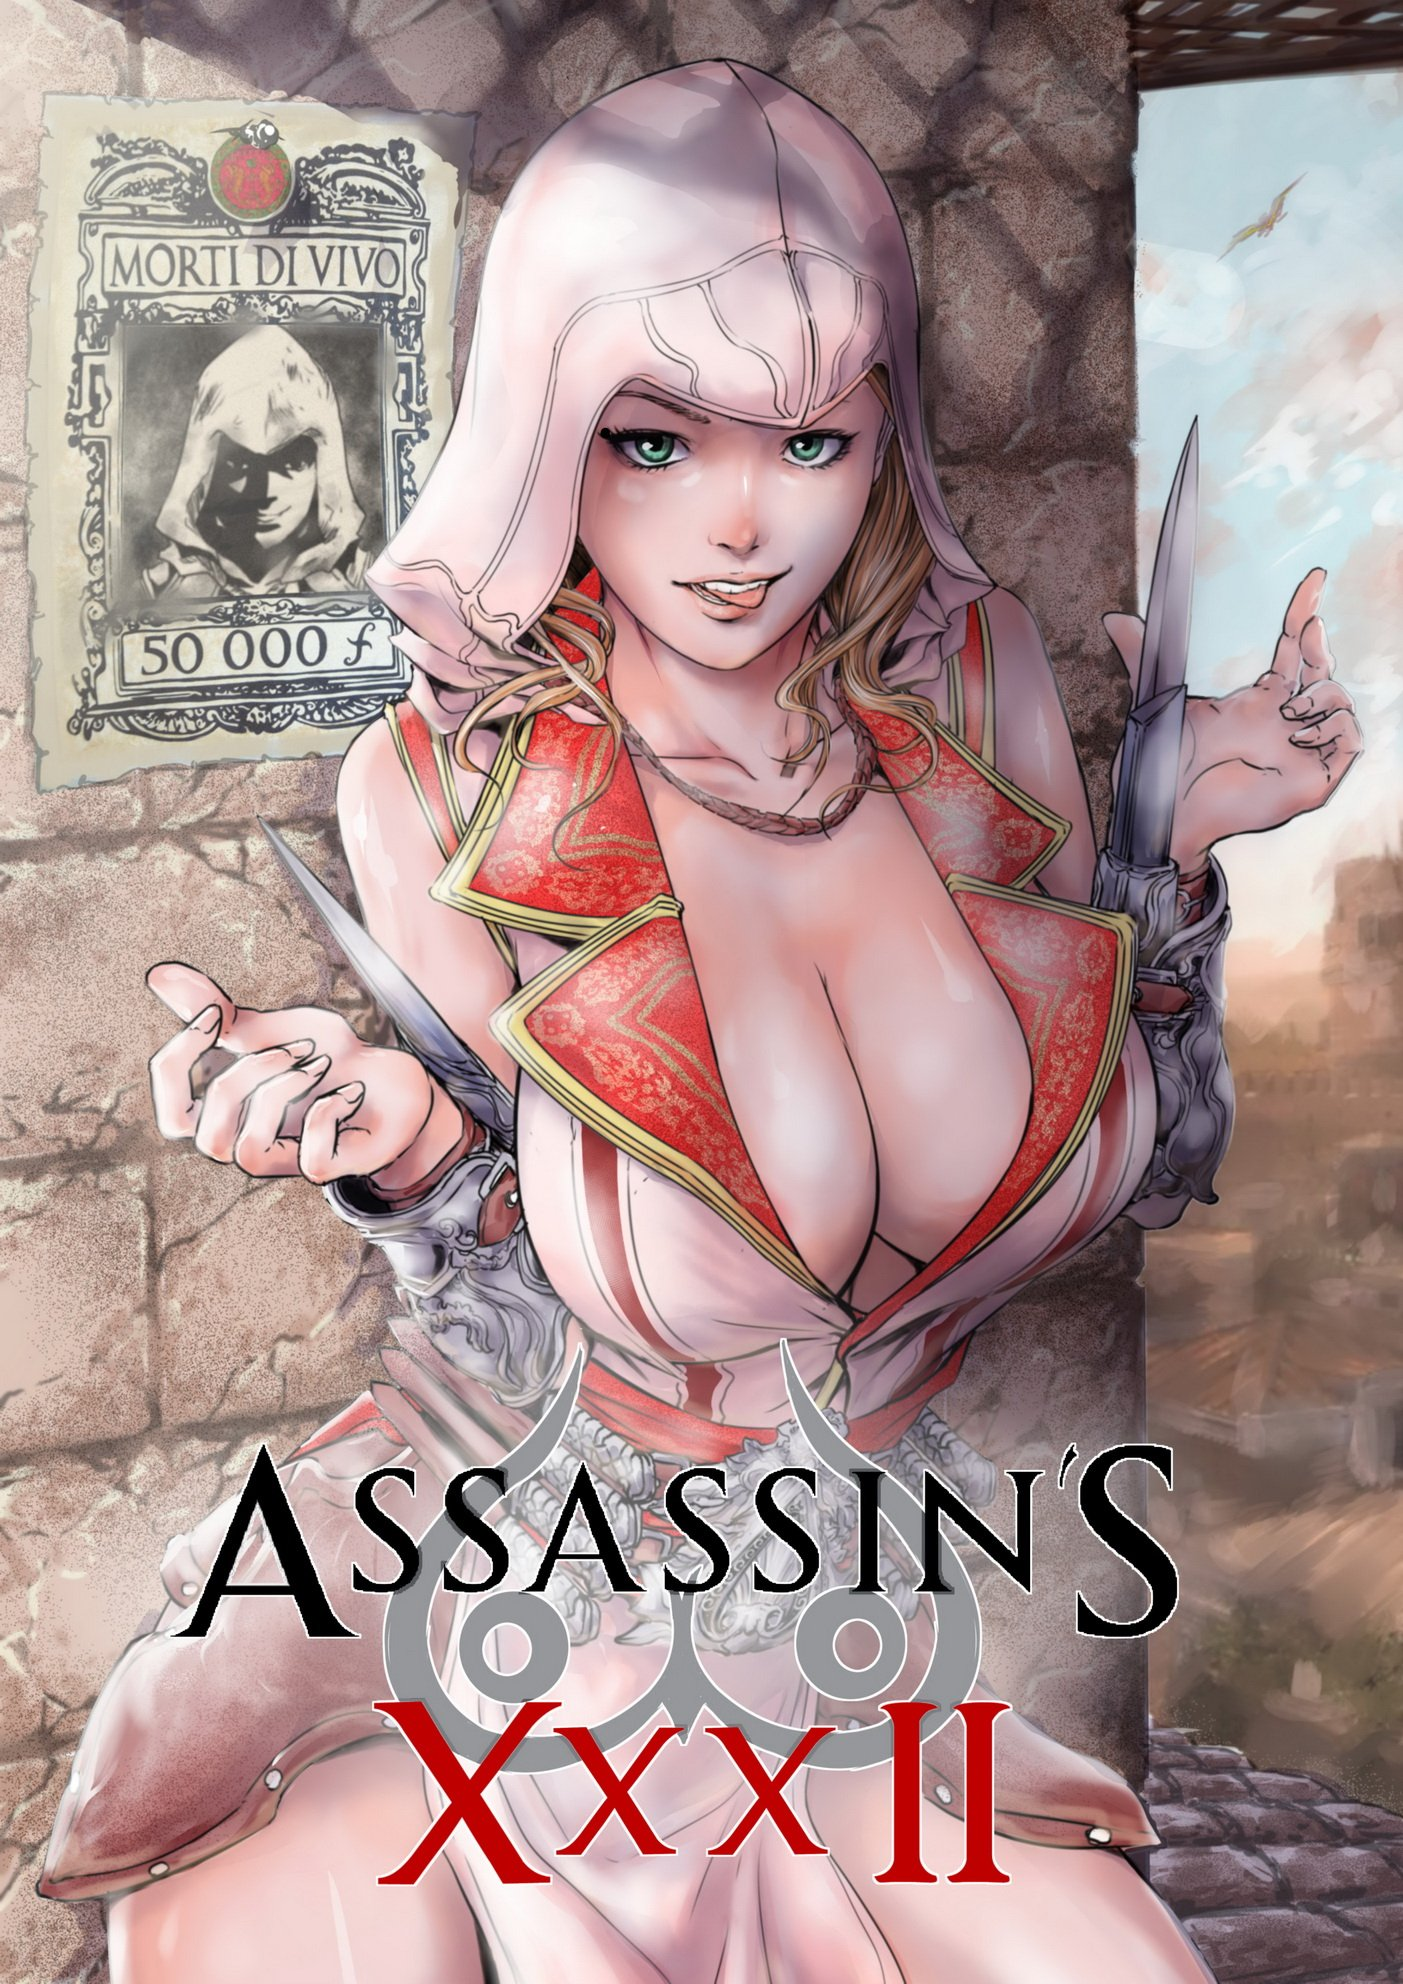 Free assassins creed porn porn clips